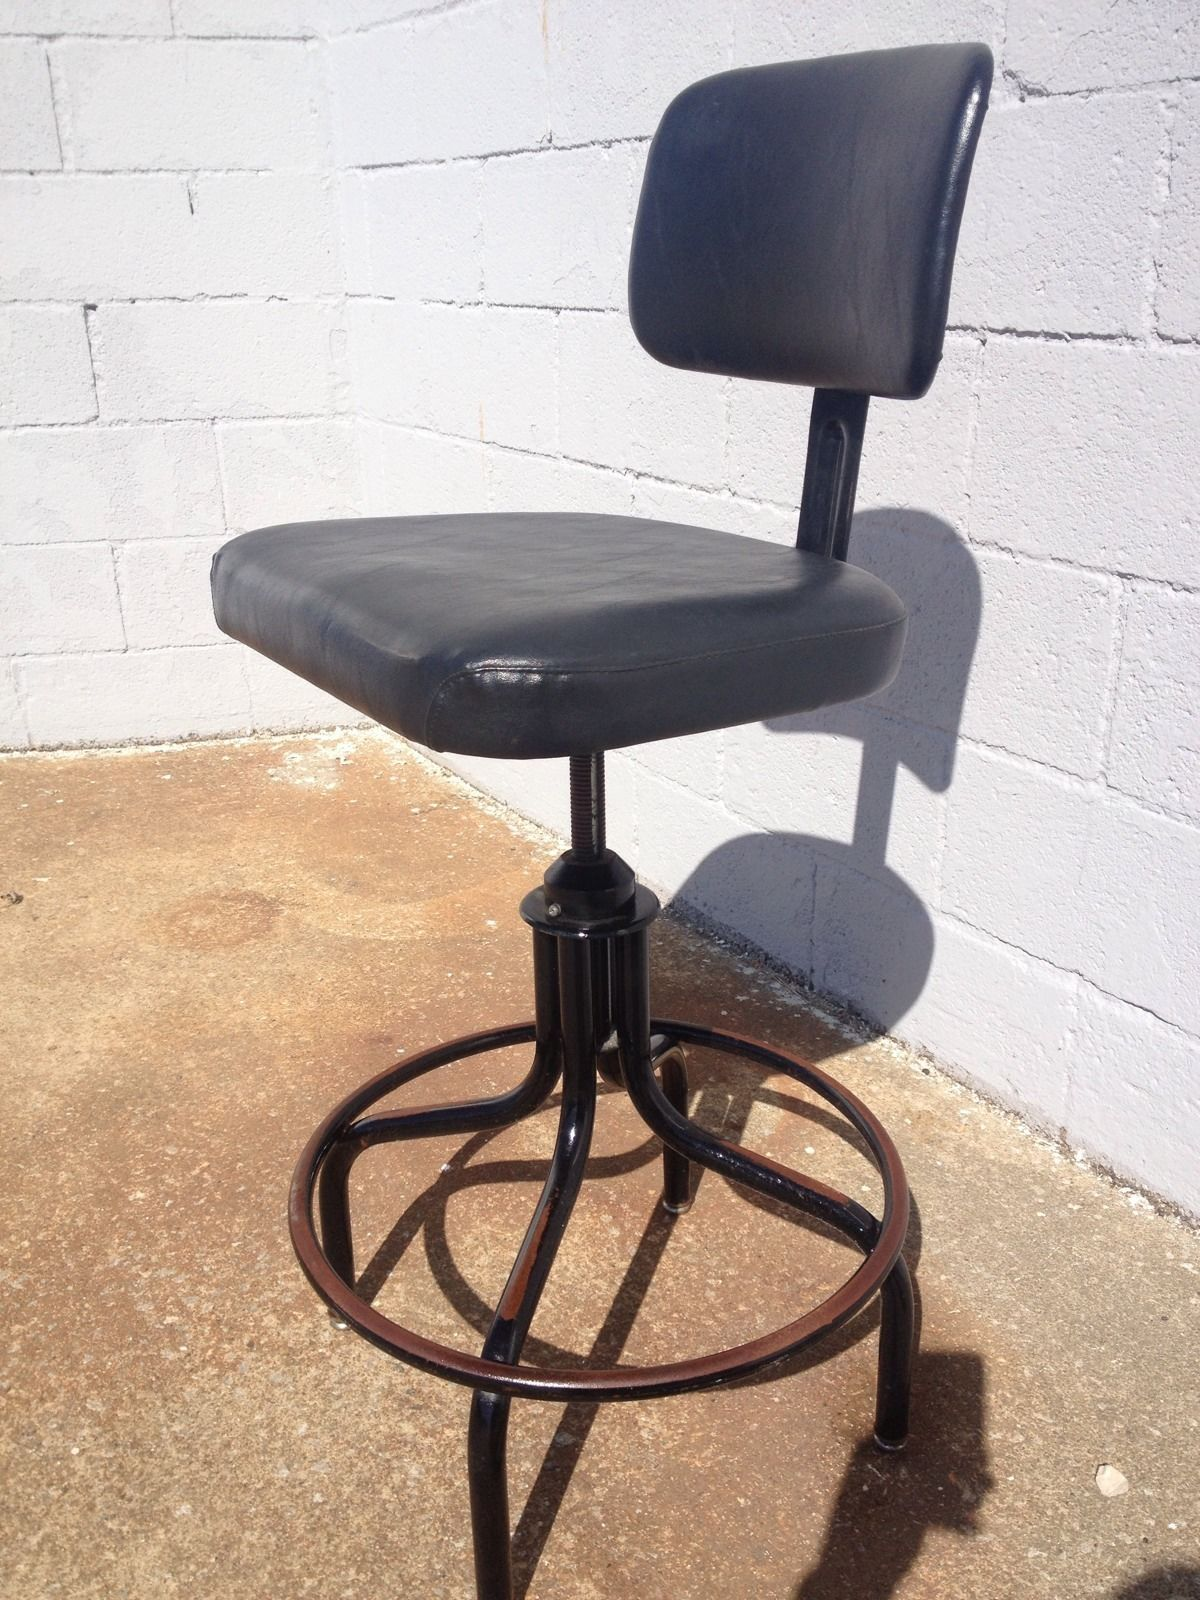 industrial age furniture. Set Of 6 Vintage Industrial Steelcase Machine Age Drafting Chair Bar Stools | EBay Furniture E